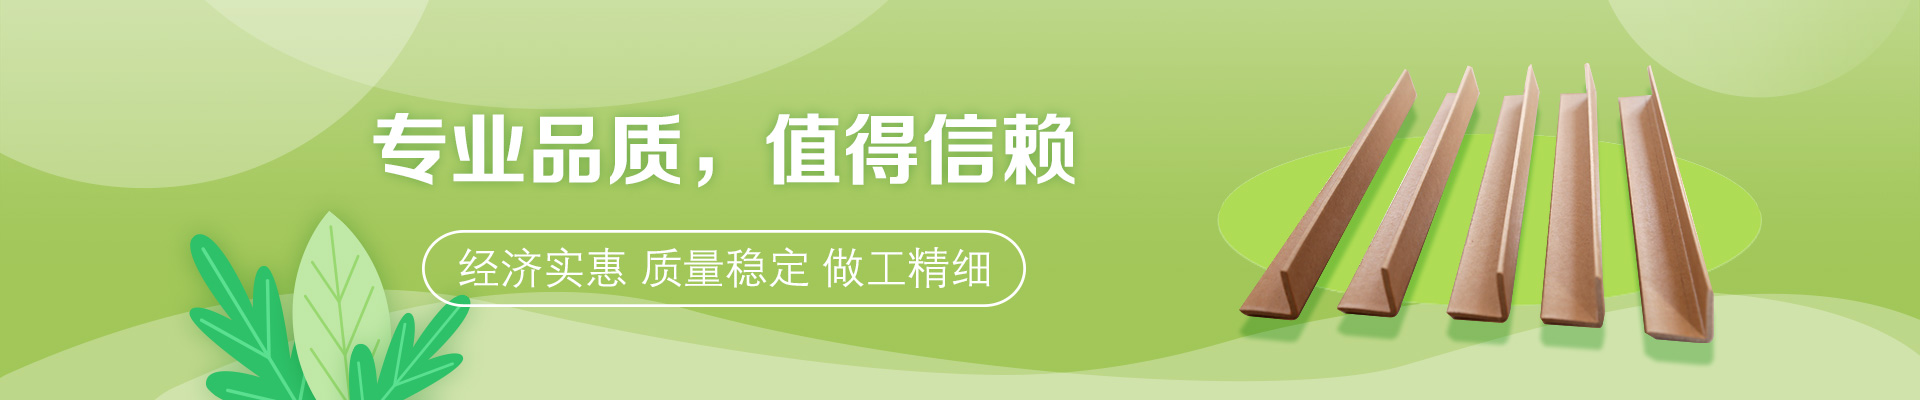 http://www.qingdaojiahexing.com/data/images/slide/20190929164736_822.jpg